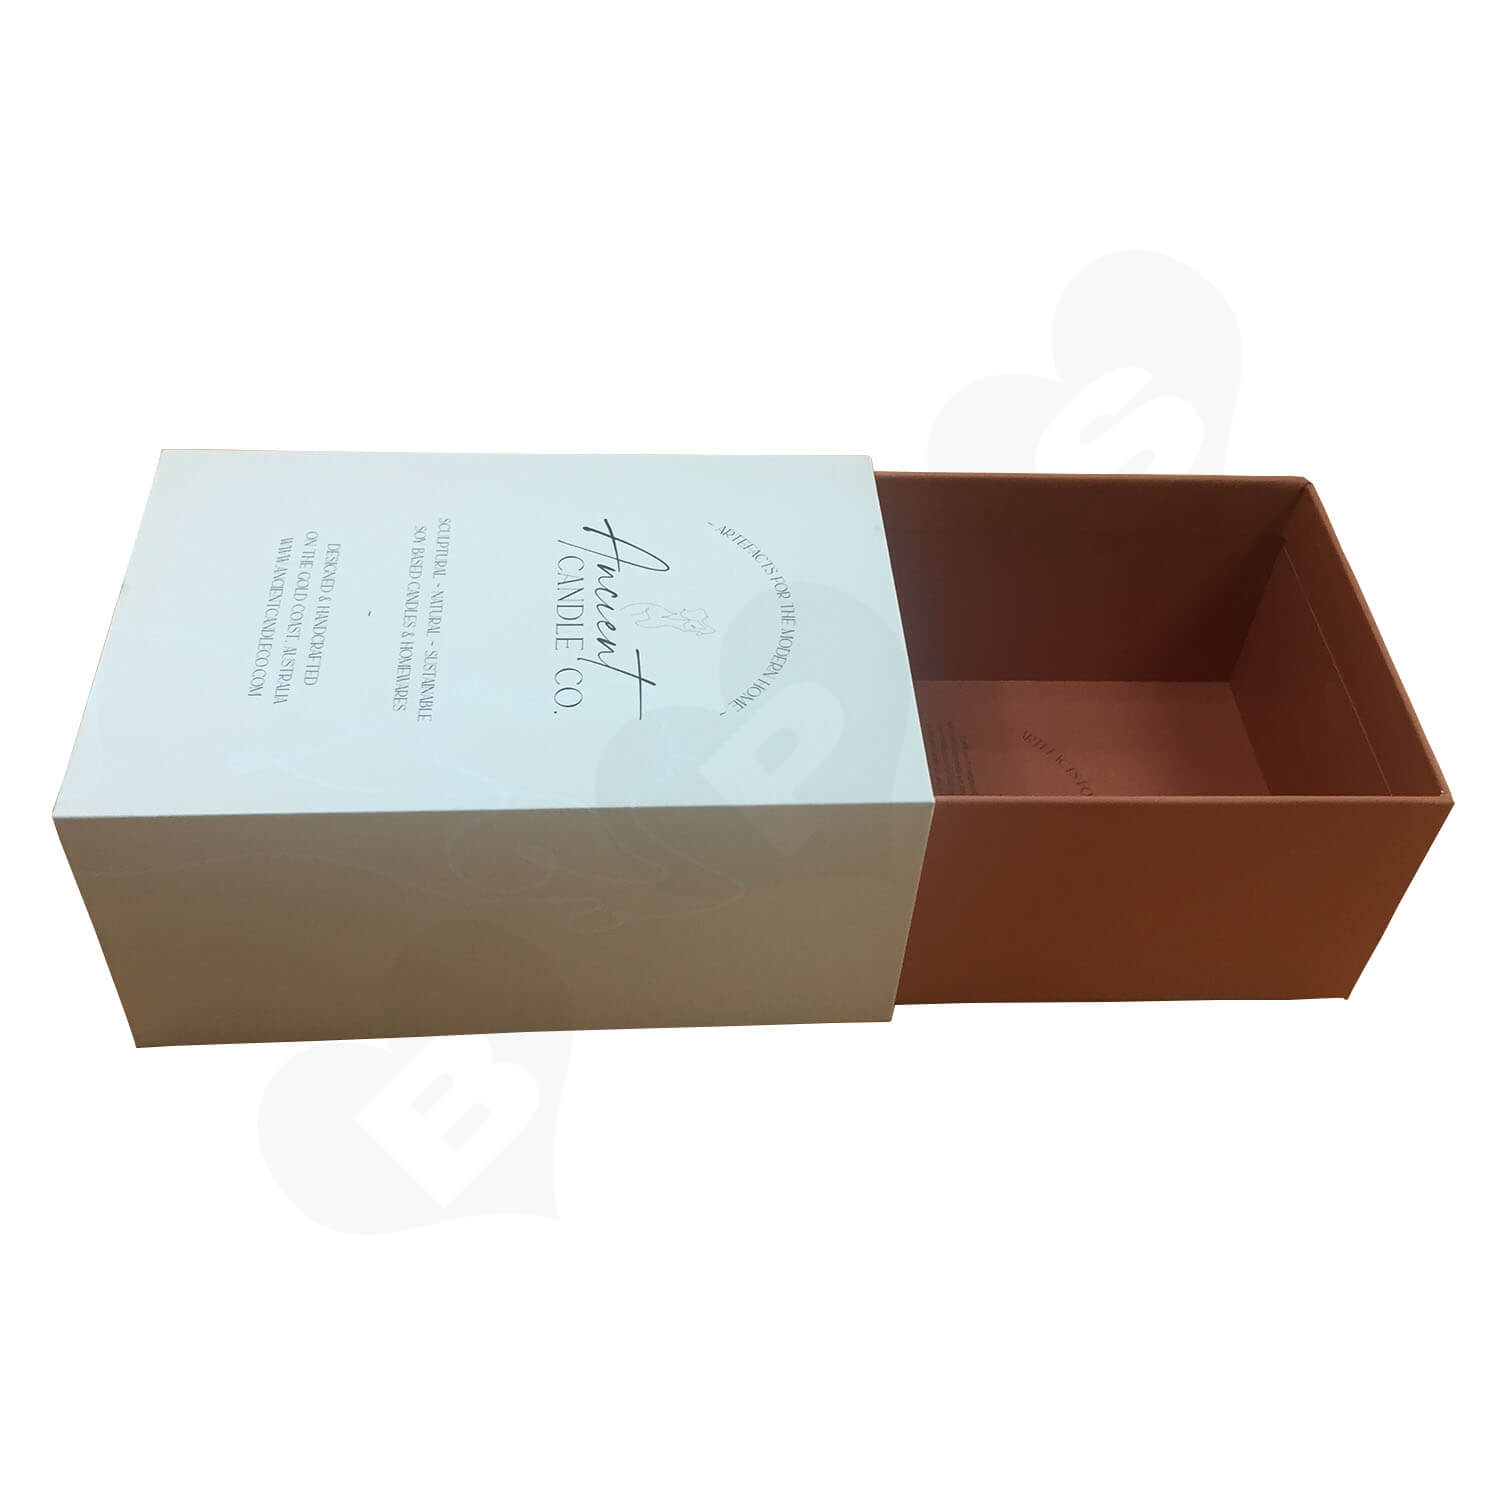 Custom Rigid Slide Drawer Box For Sculptural Candles Side View 5